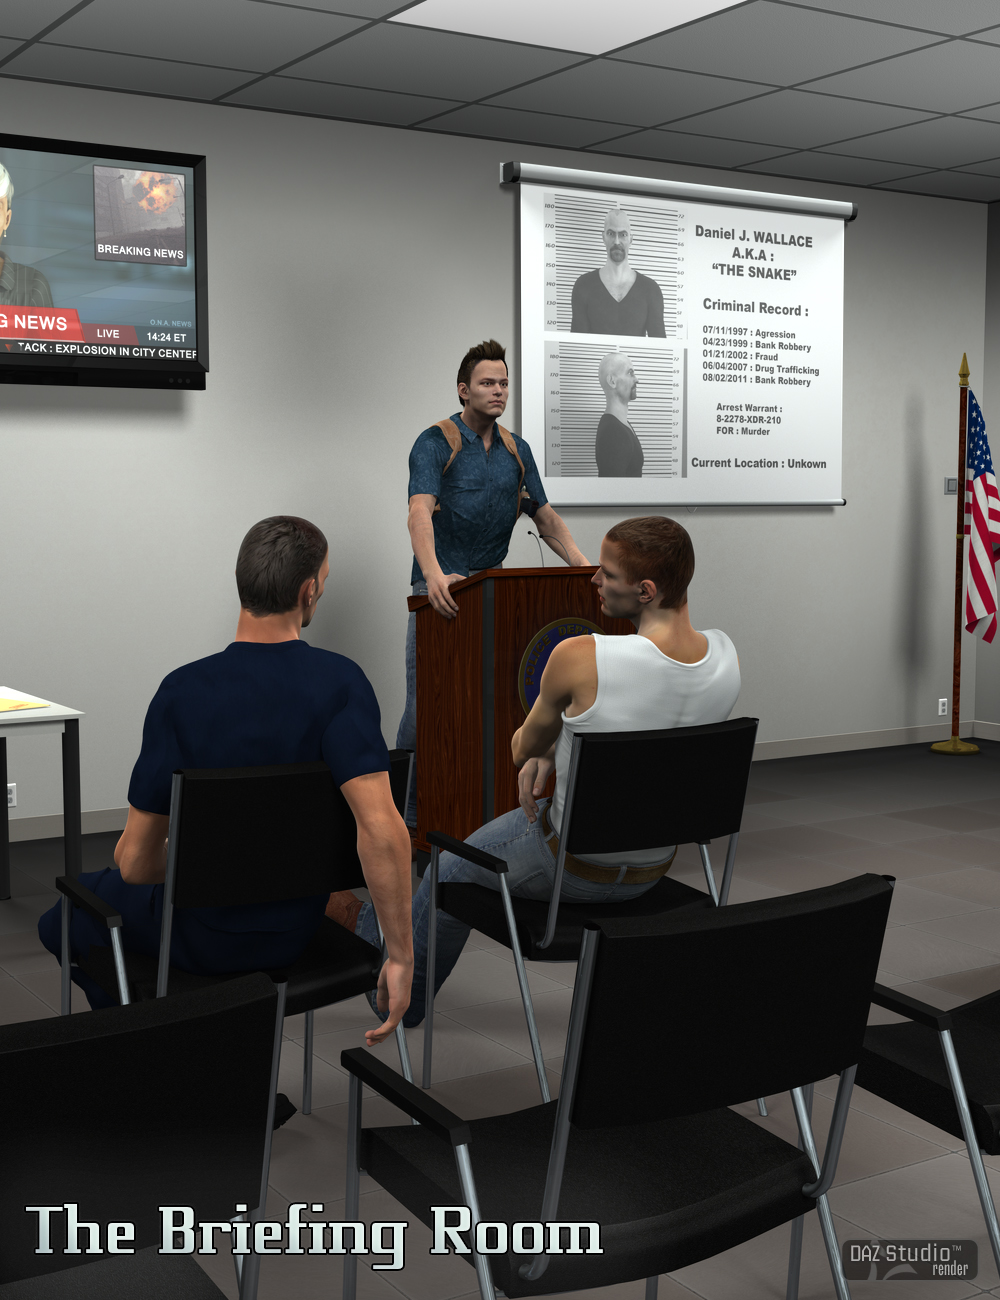 The Briefing Room by: Daz OriginalsV3Digitimes, 3D Models by Daz 3D